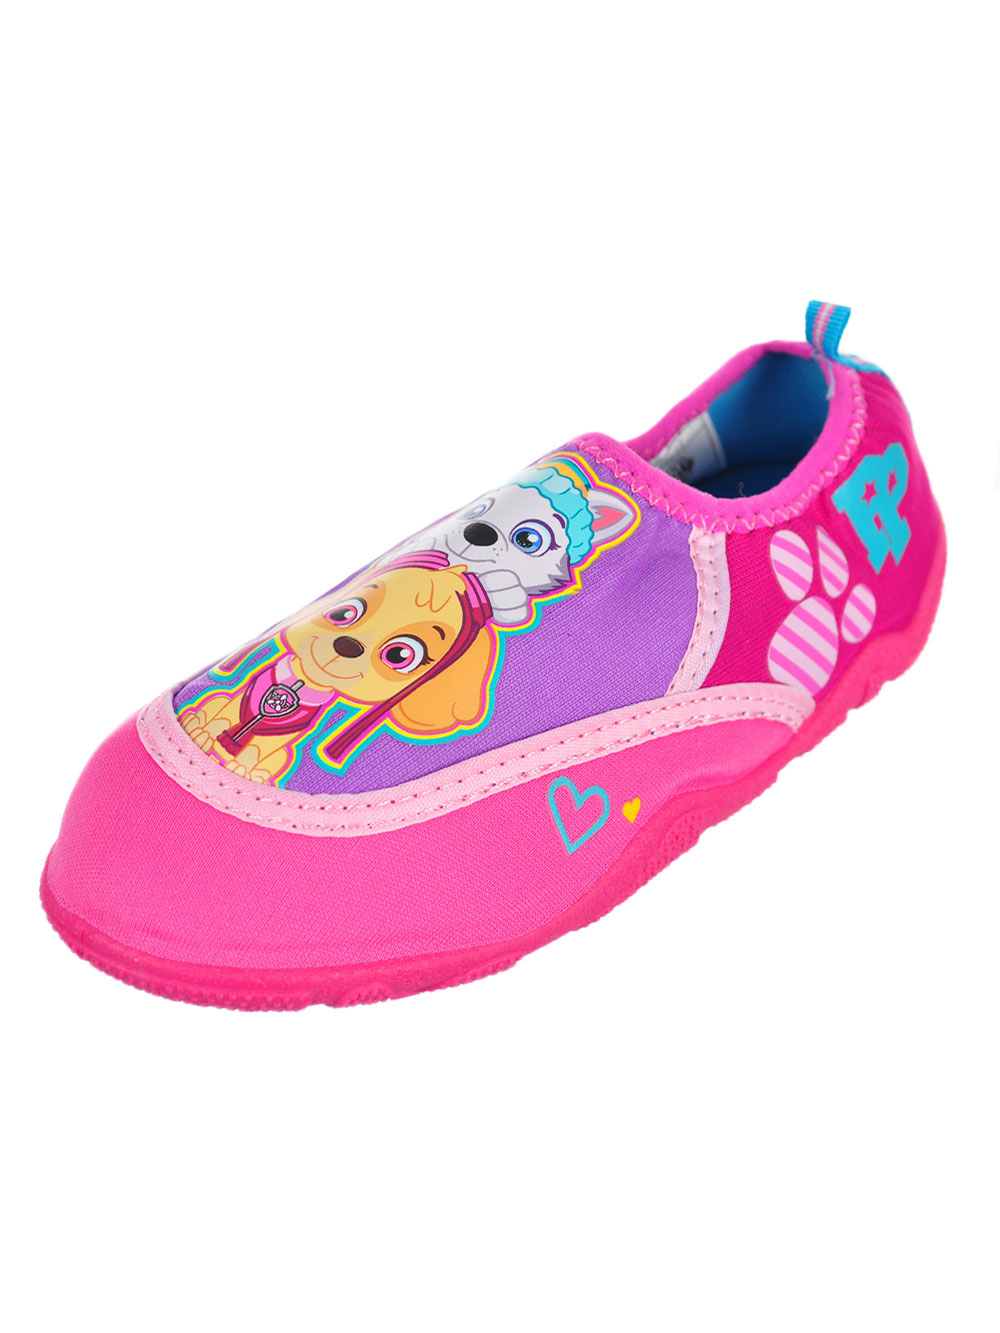 Paw Patrol Girls' Water Shoes (Sizes 5 – 12) - CookiesKids.com